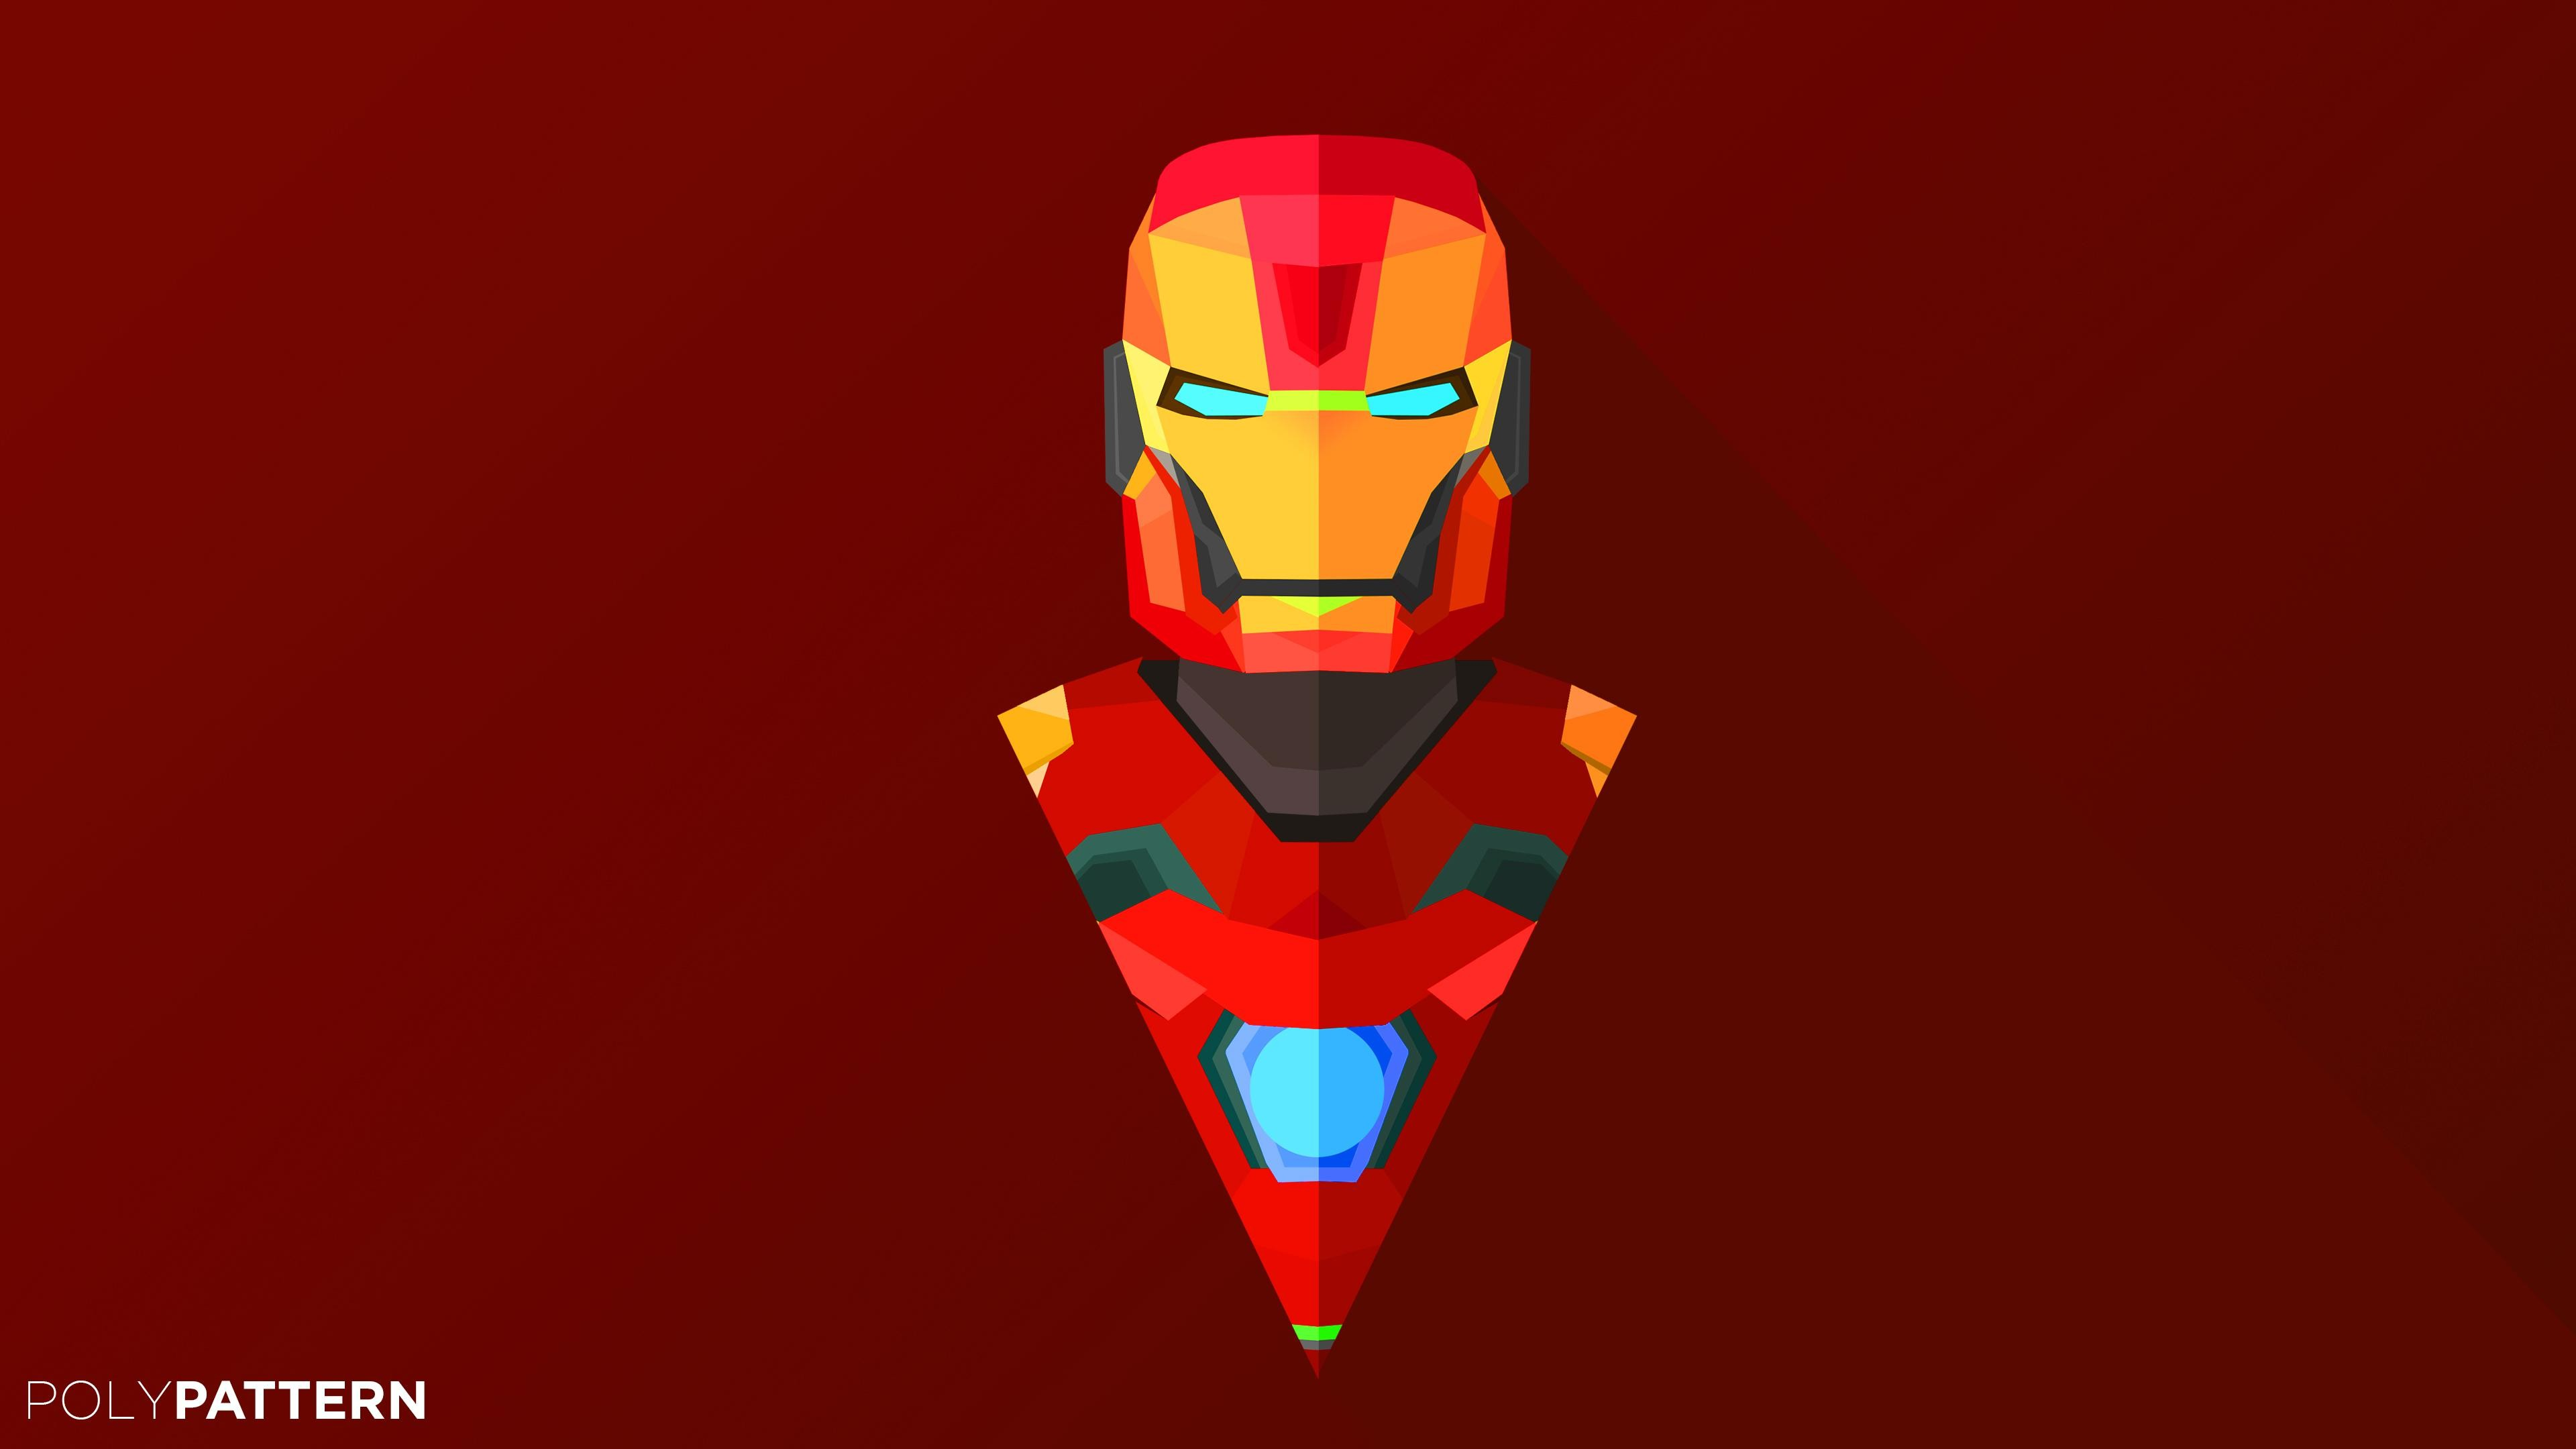 Wallpaper Iron Man abstract low poly minimalism 4k 5k iphone 3840x2160